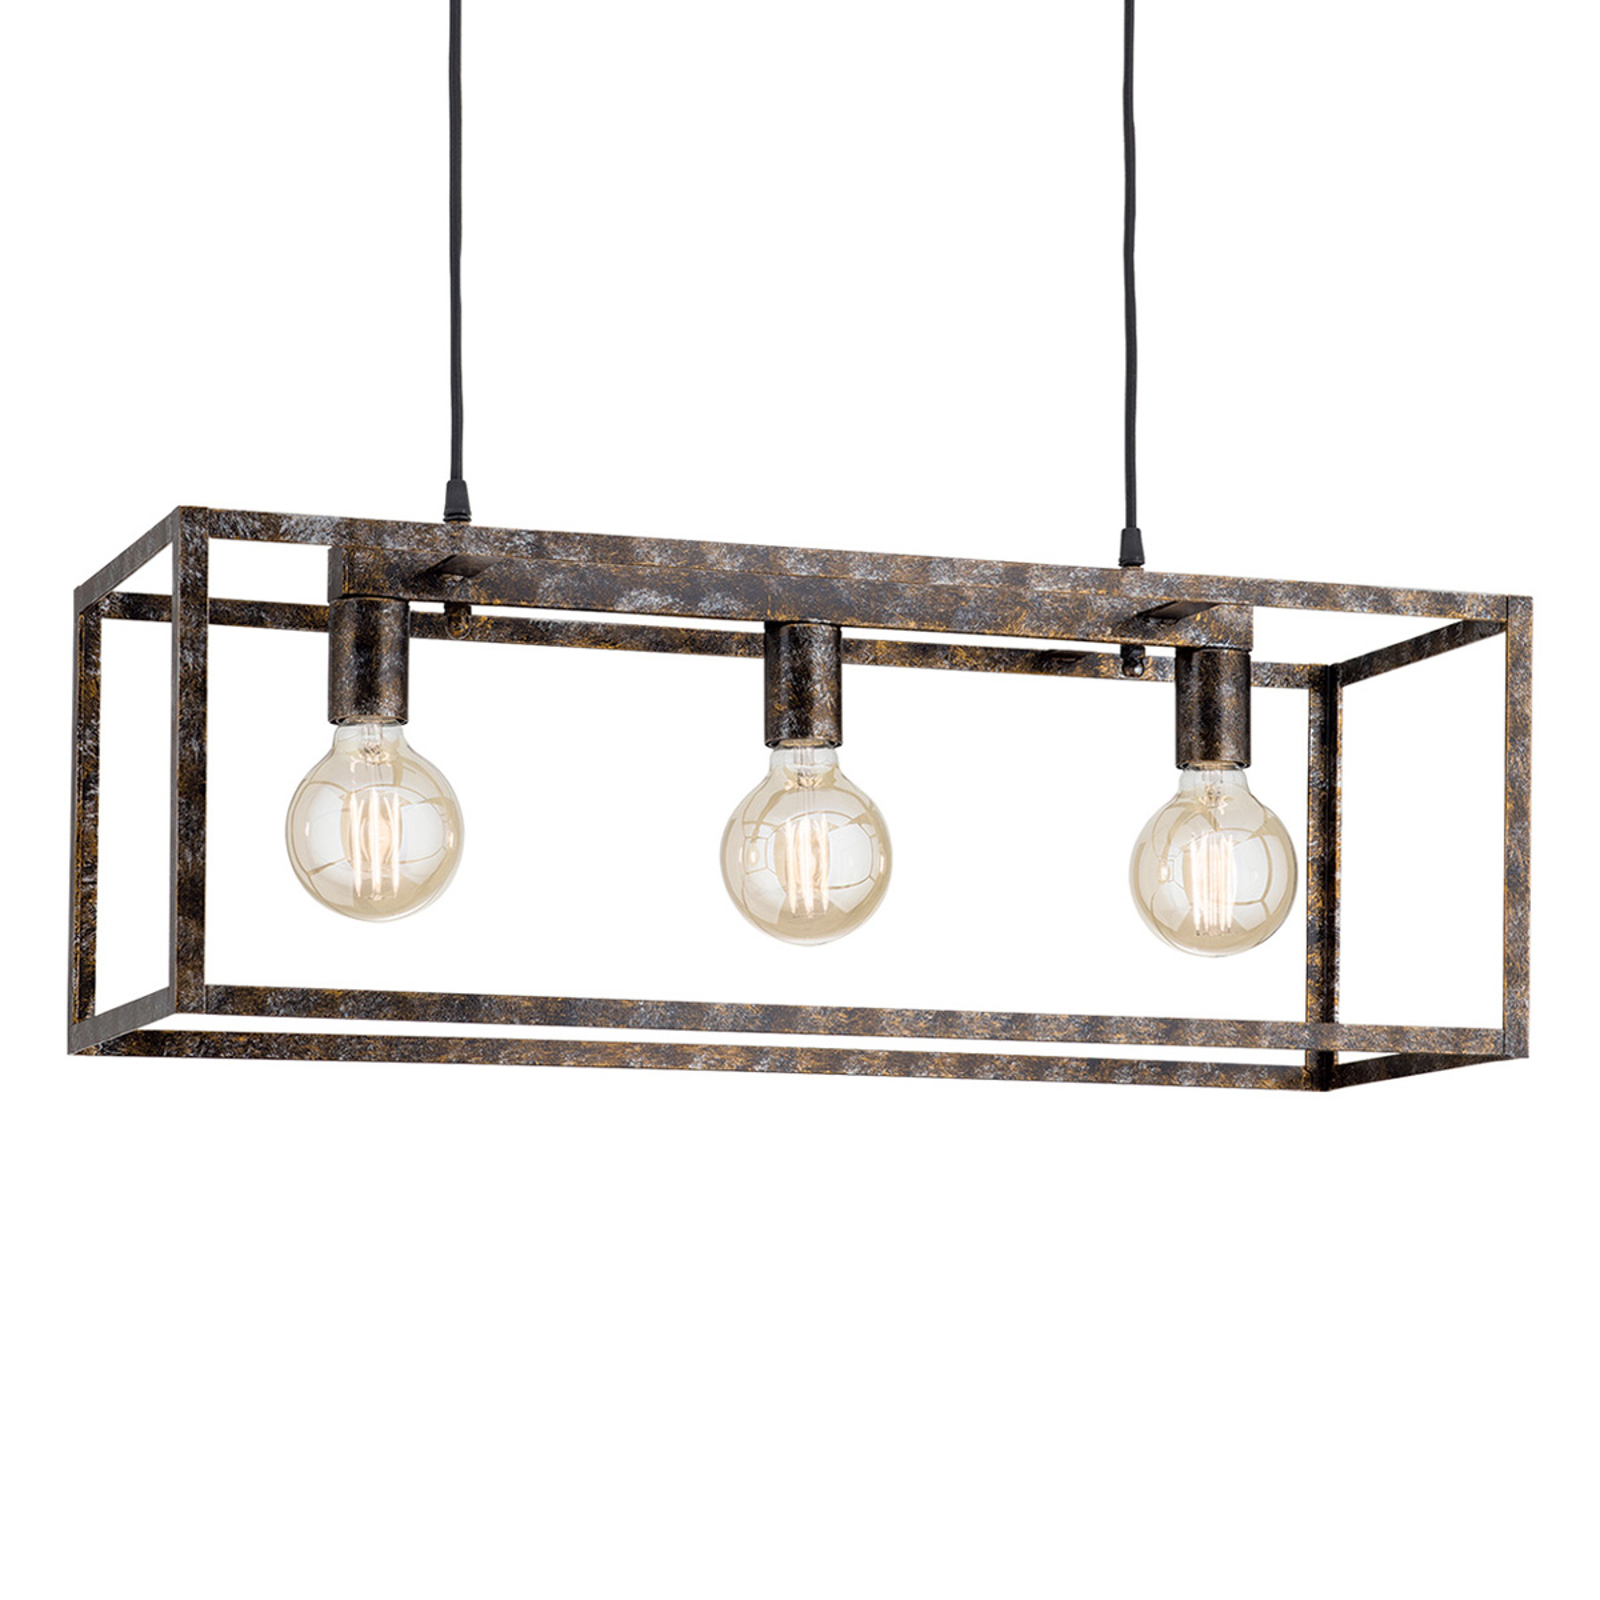 Hanglamp Cage in roest-optiek 3 lamps